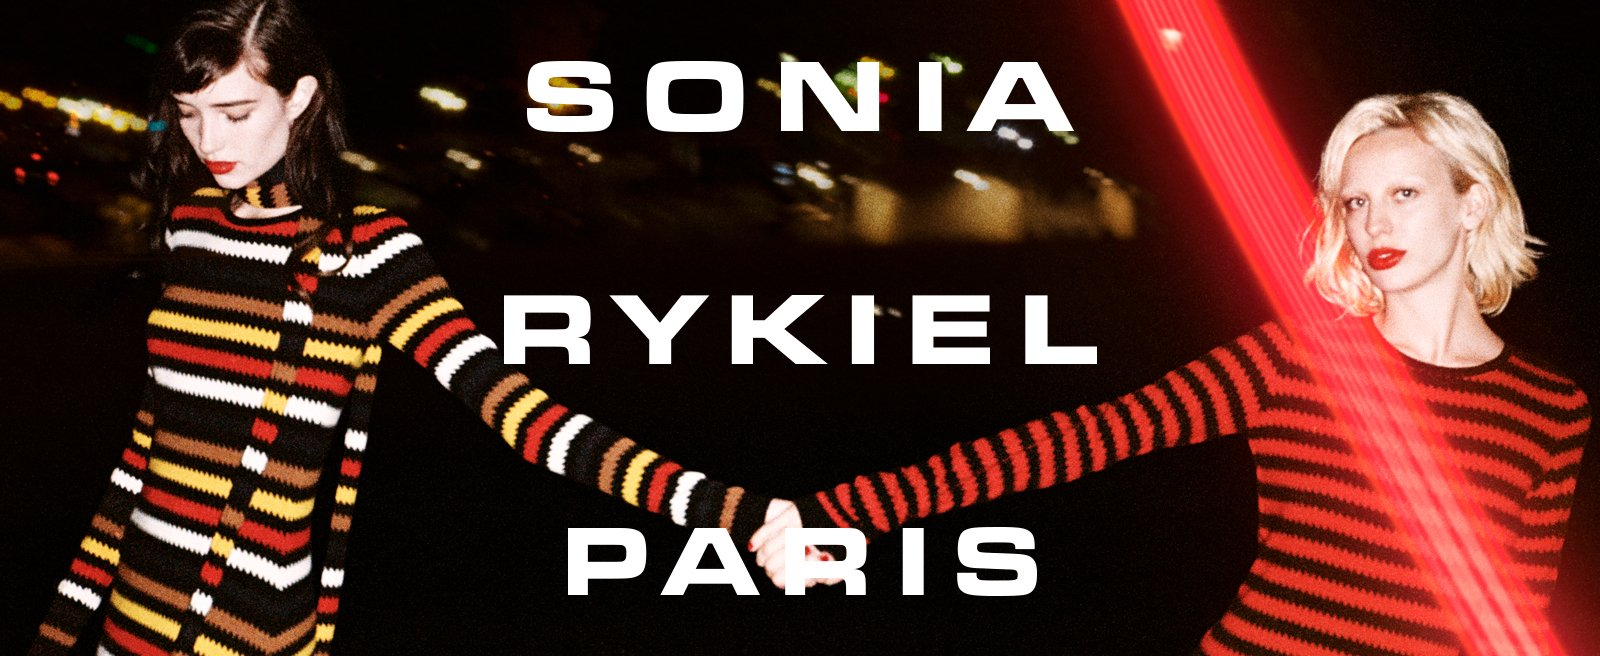 Boutique Sonia Rykiel - Nailloux Outlet Village